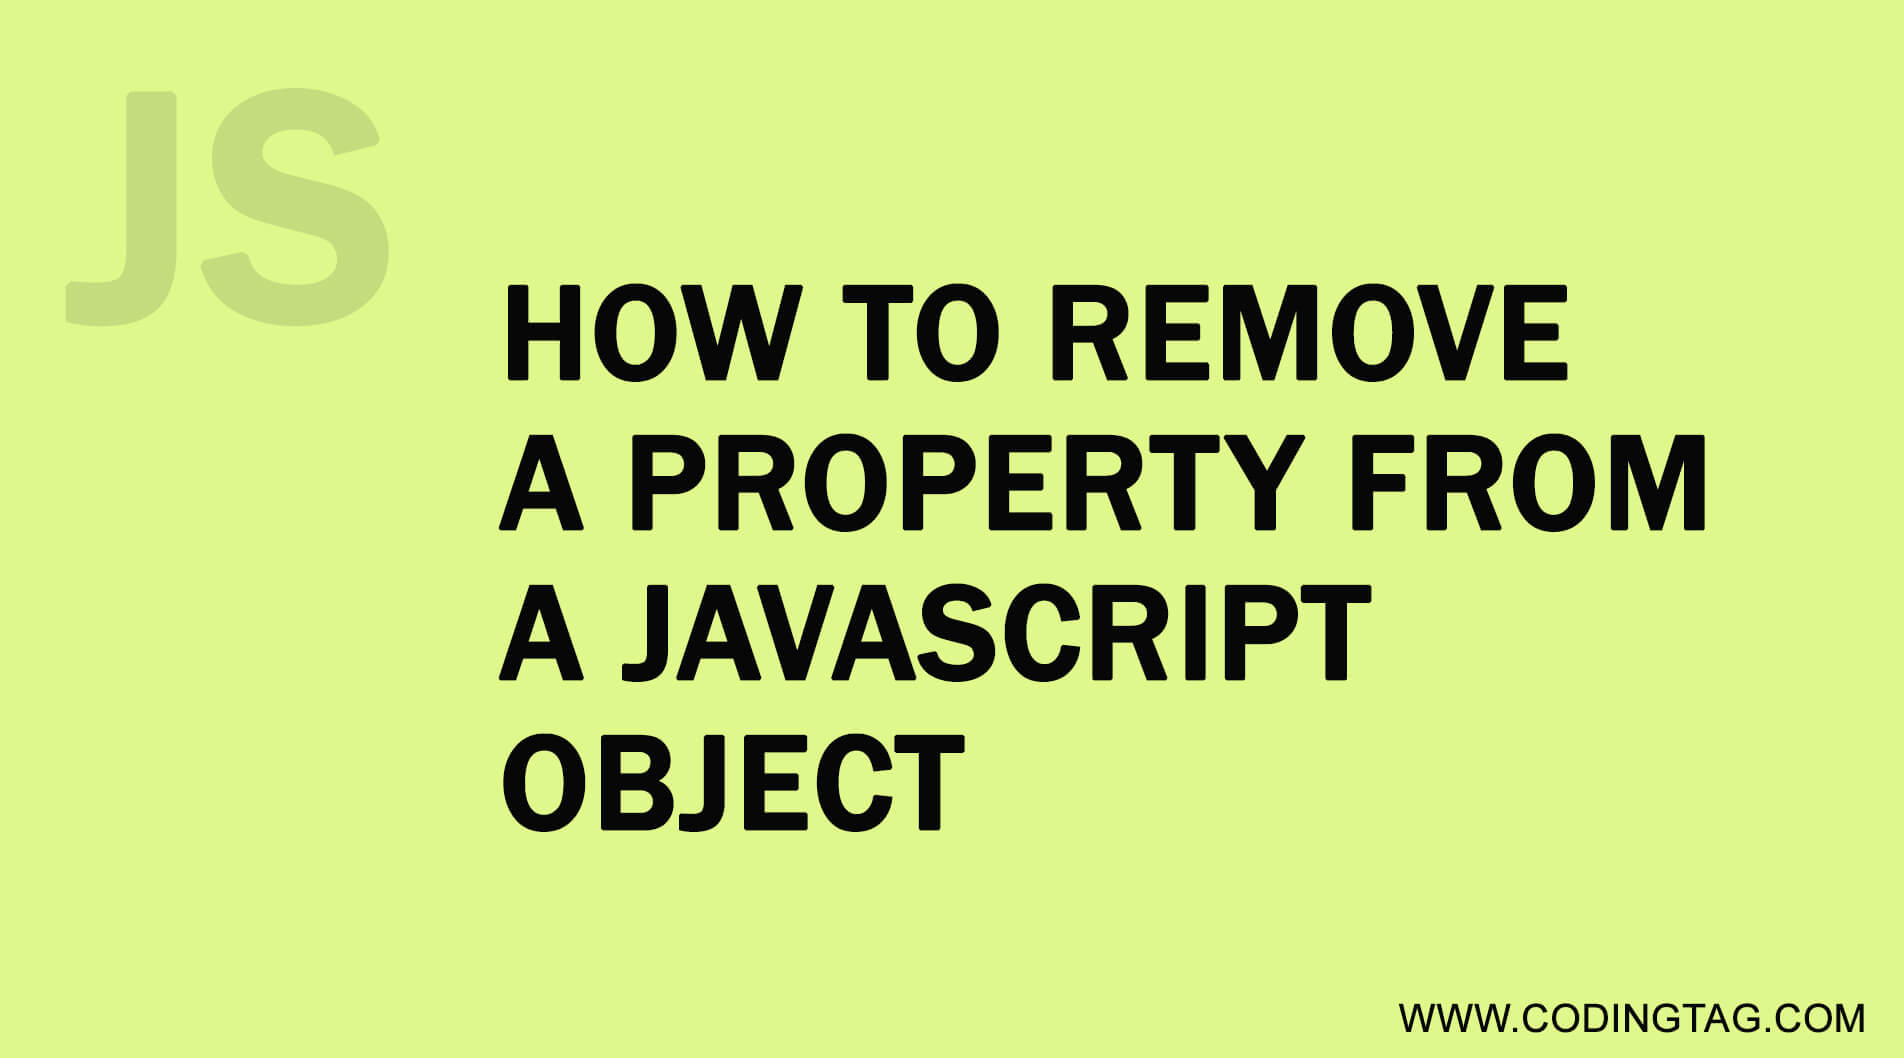 How to remove a property from a JavaScript Object?